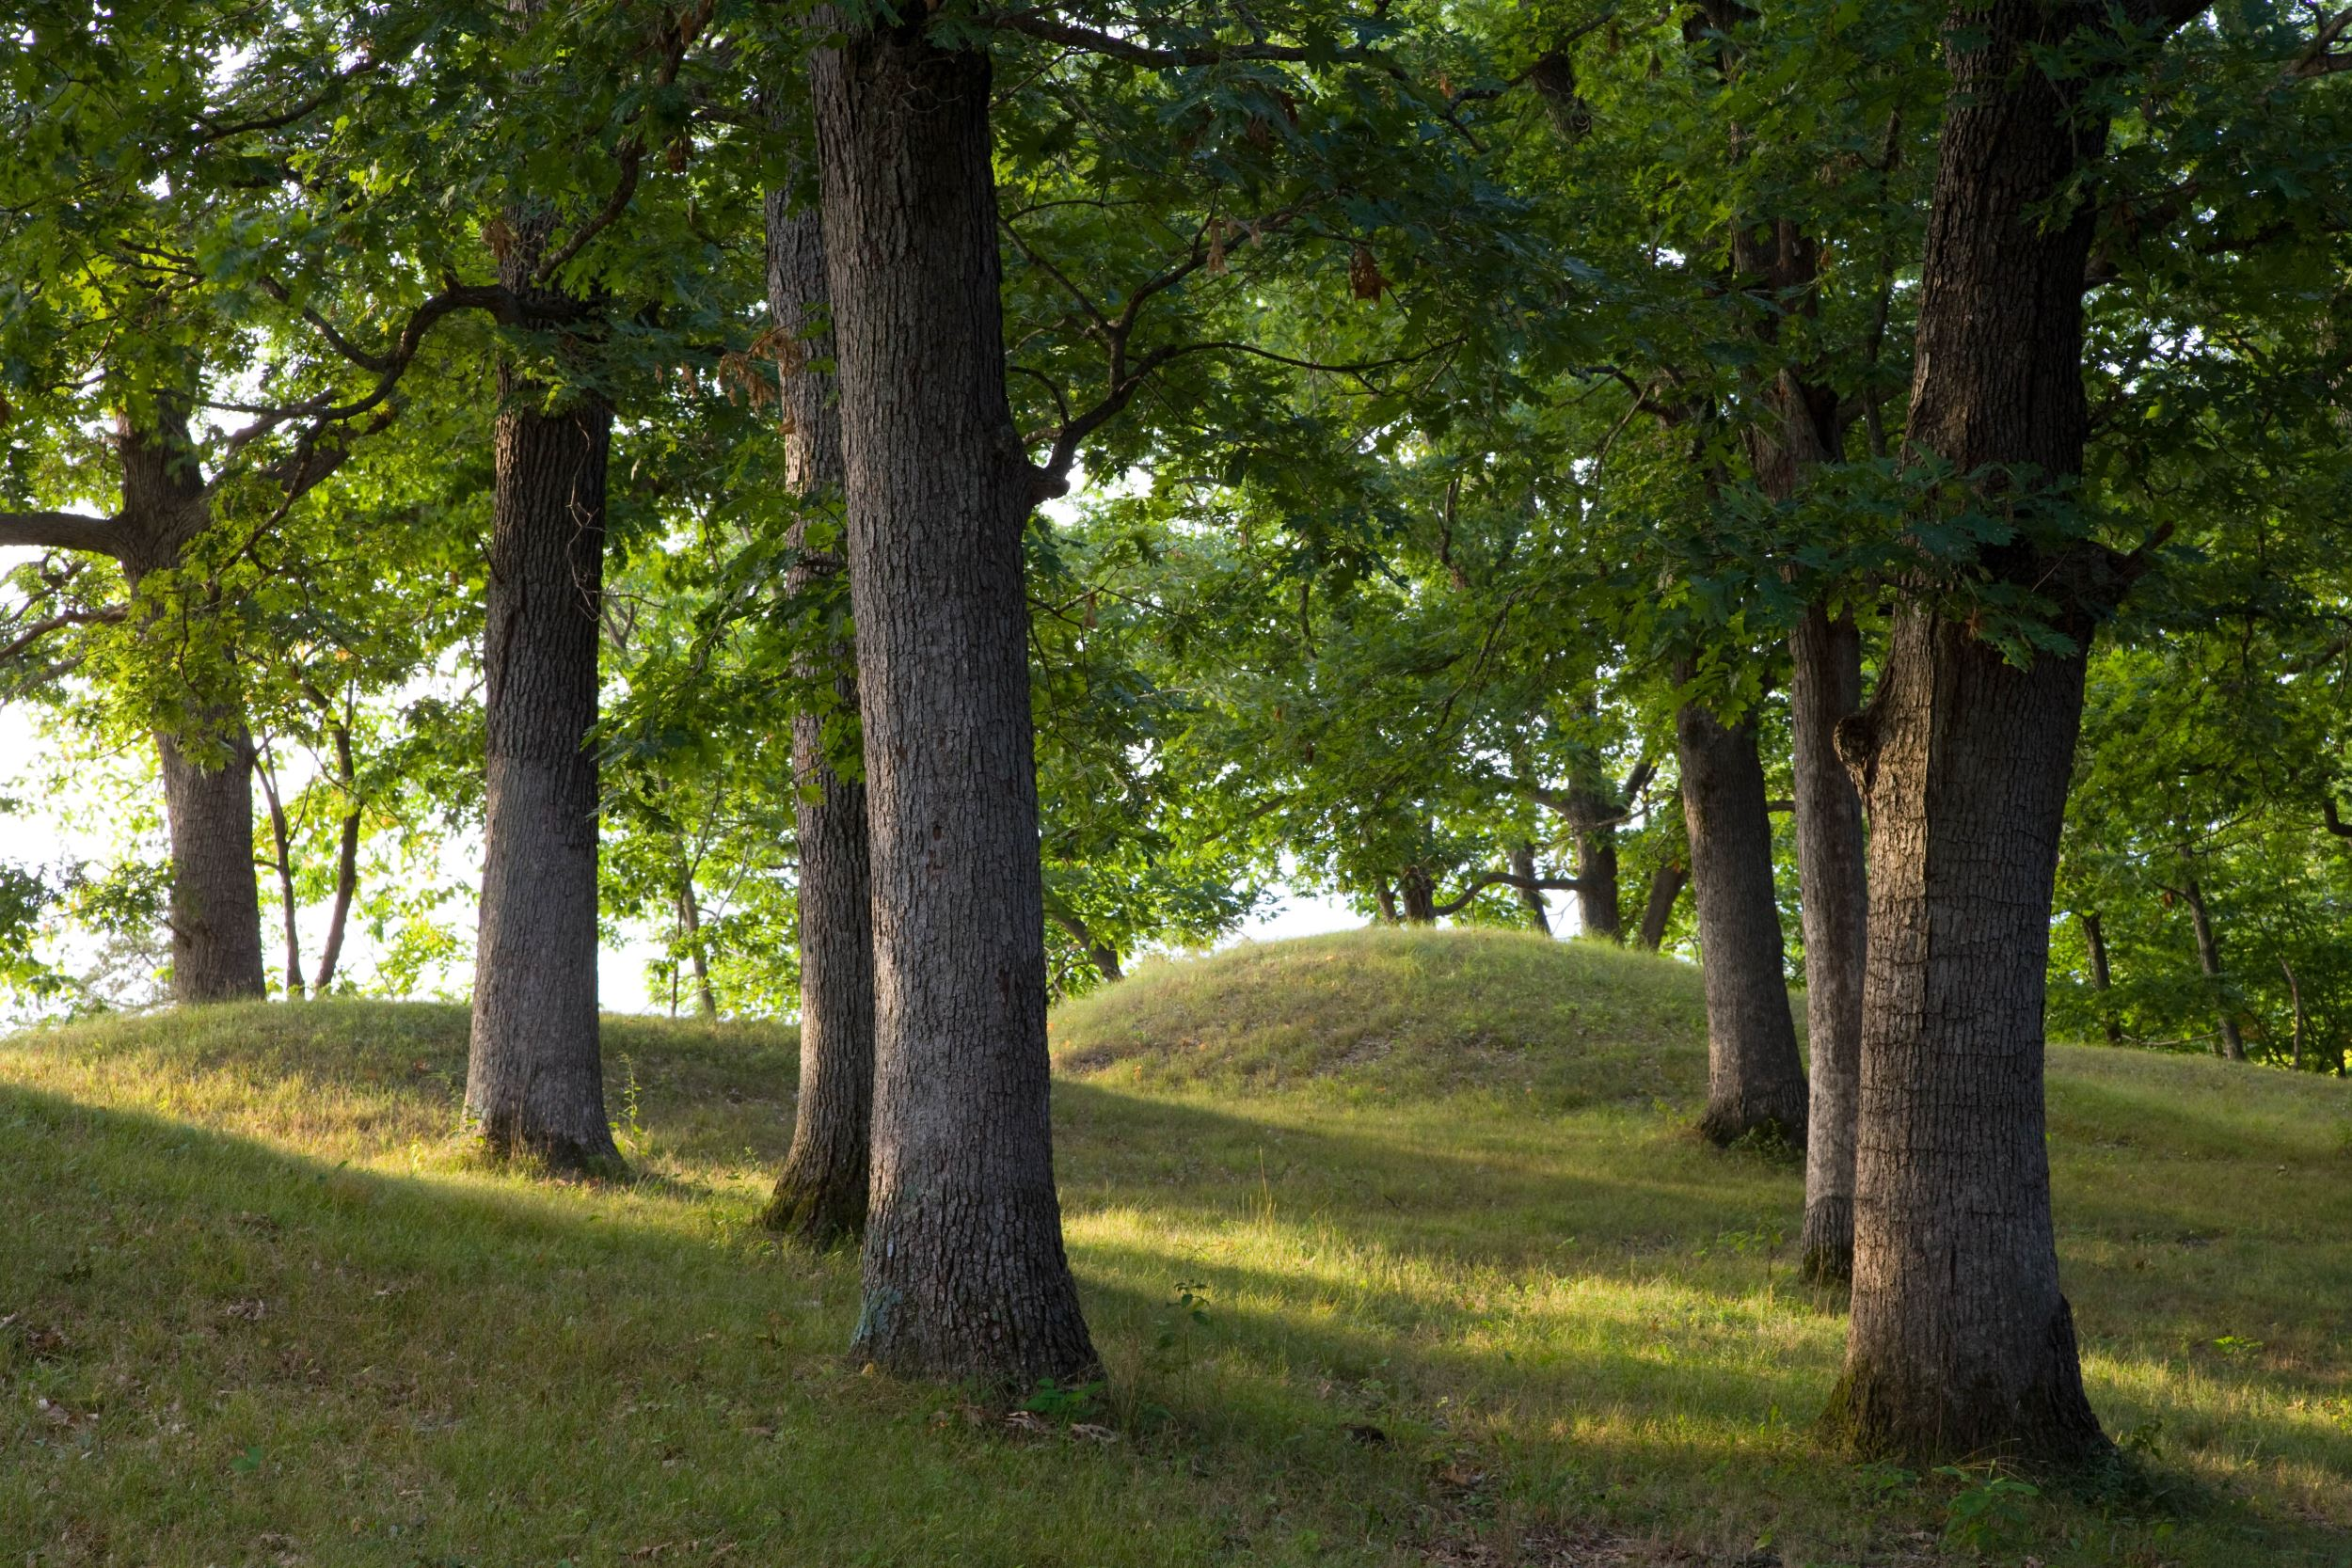 Native American Mounds